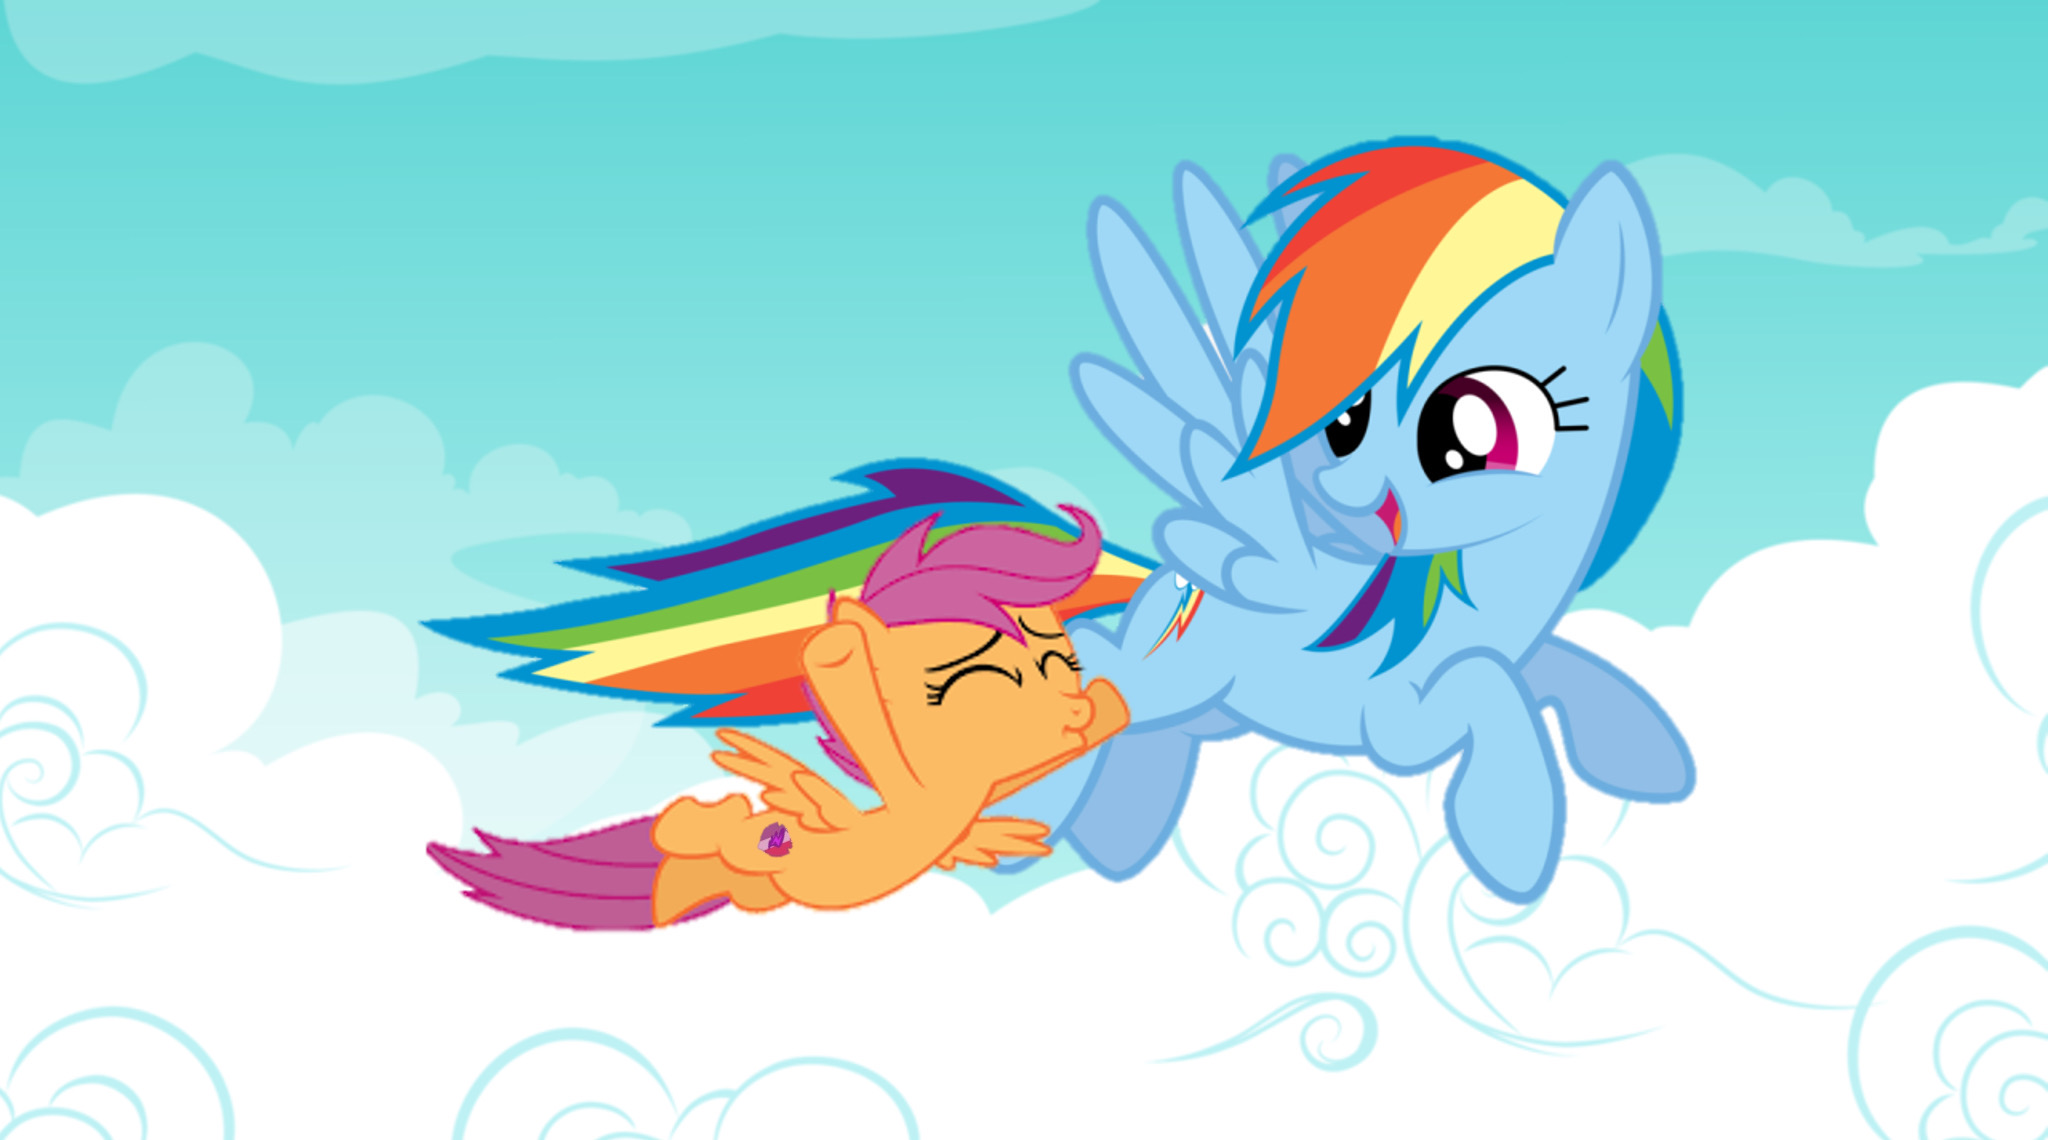 Rainbow Dash And Scootaloo Flying Together By Darkmoonanimation On Deviantart Scootaloo can't fly because she lacks the light bones of a pegasus, and has the heavy bones of an earth pony. rainbow dash and scootaloo flying